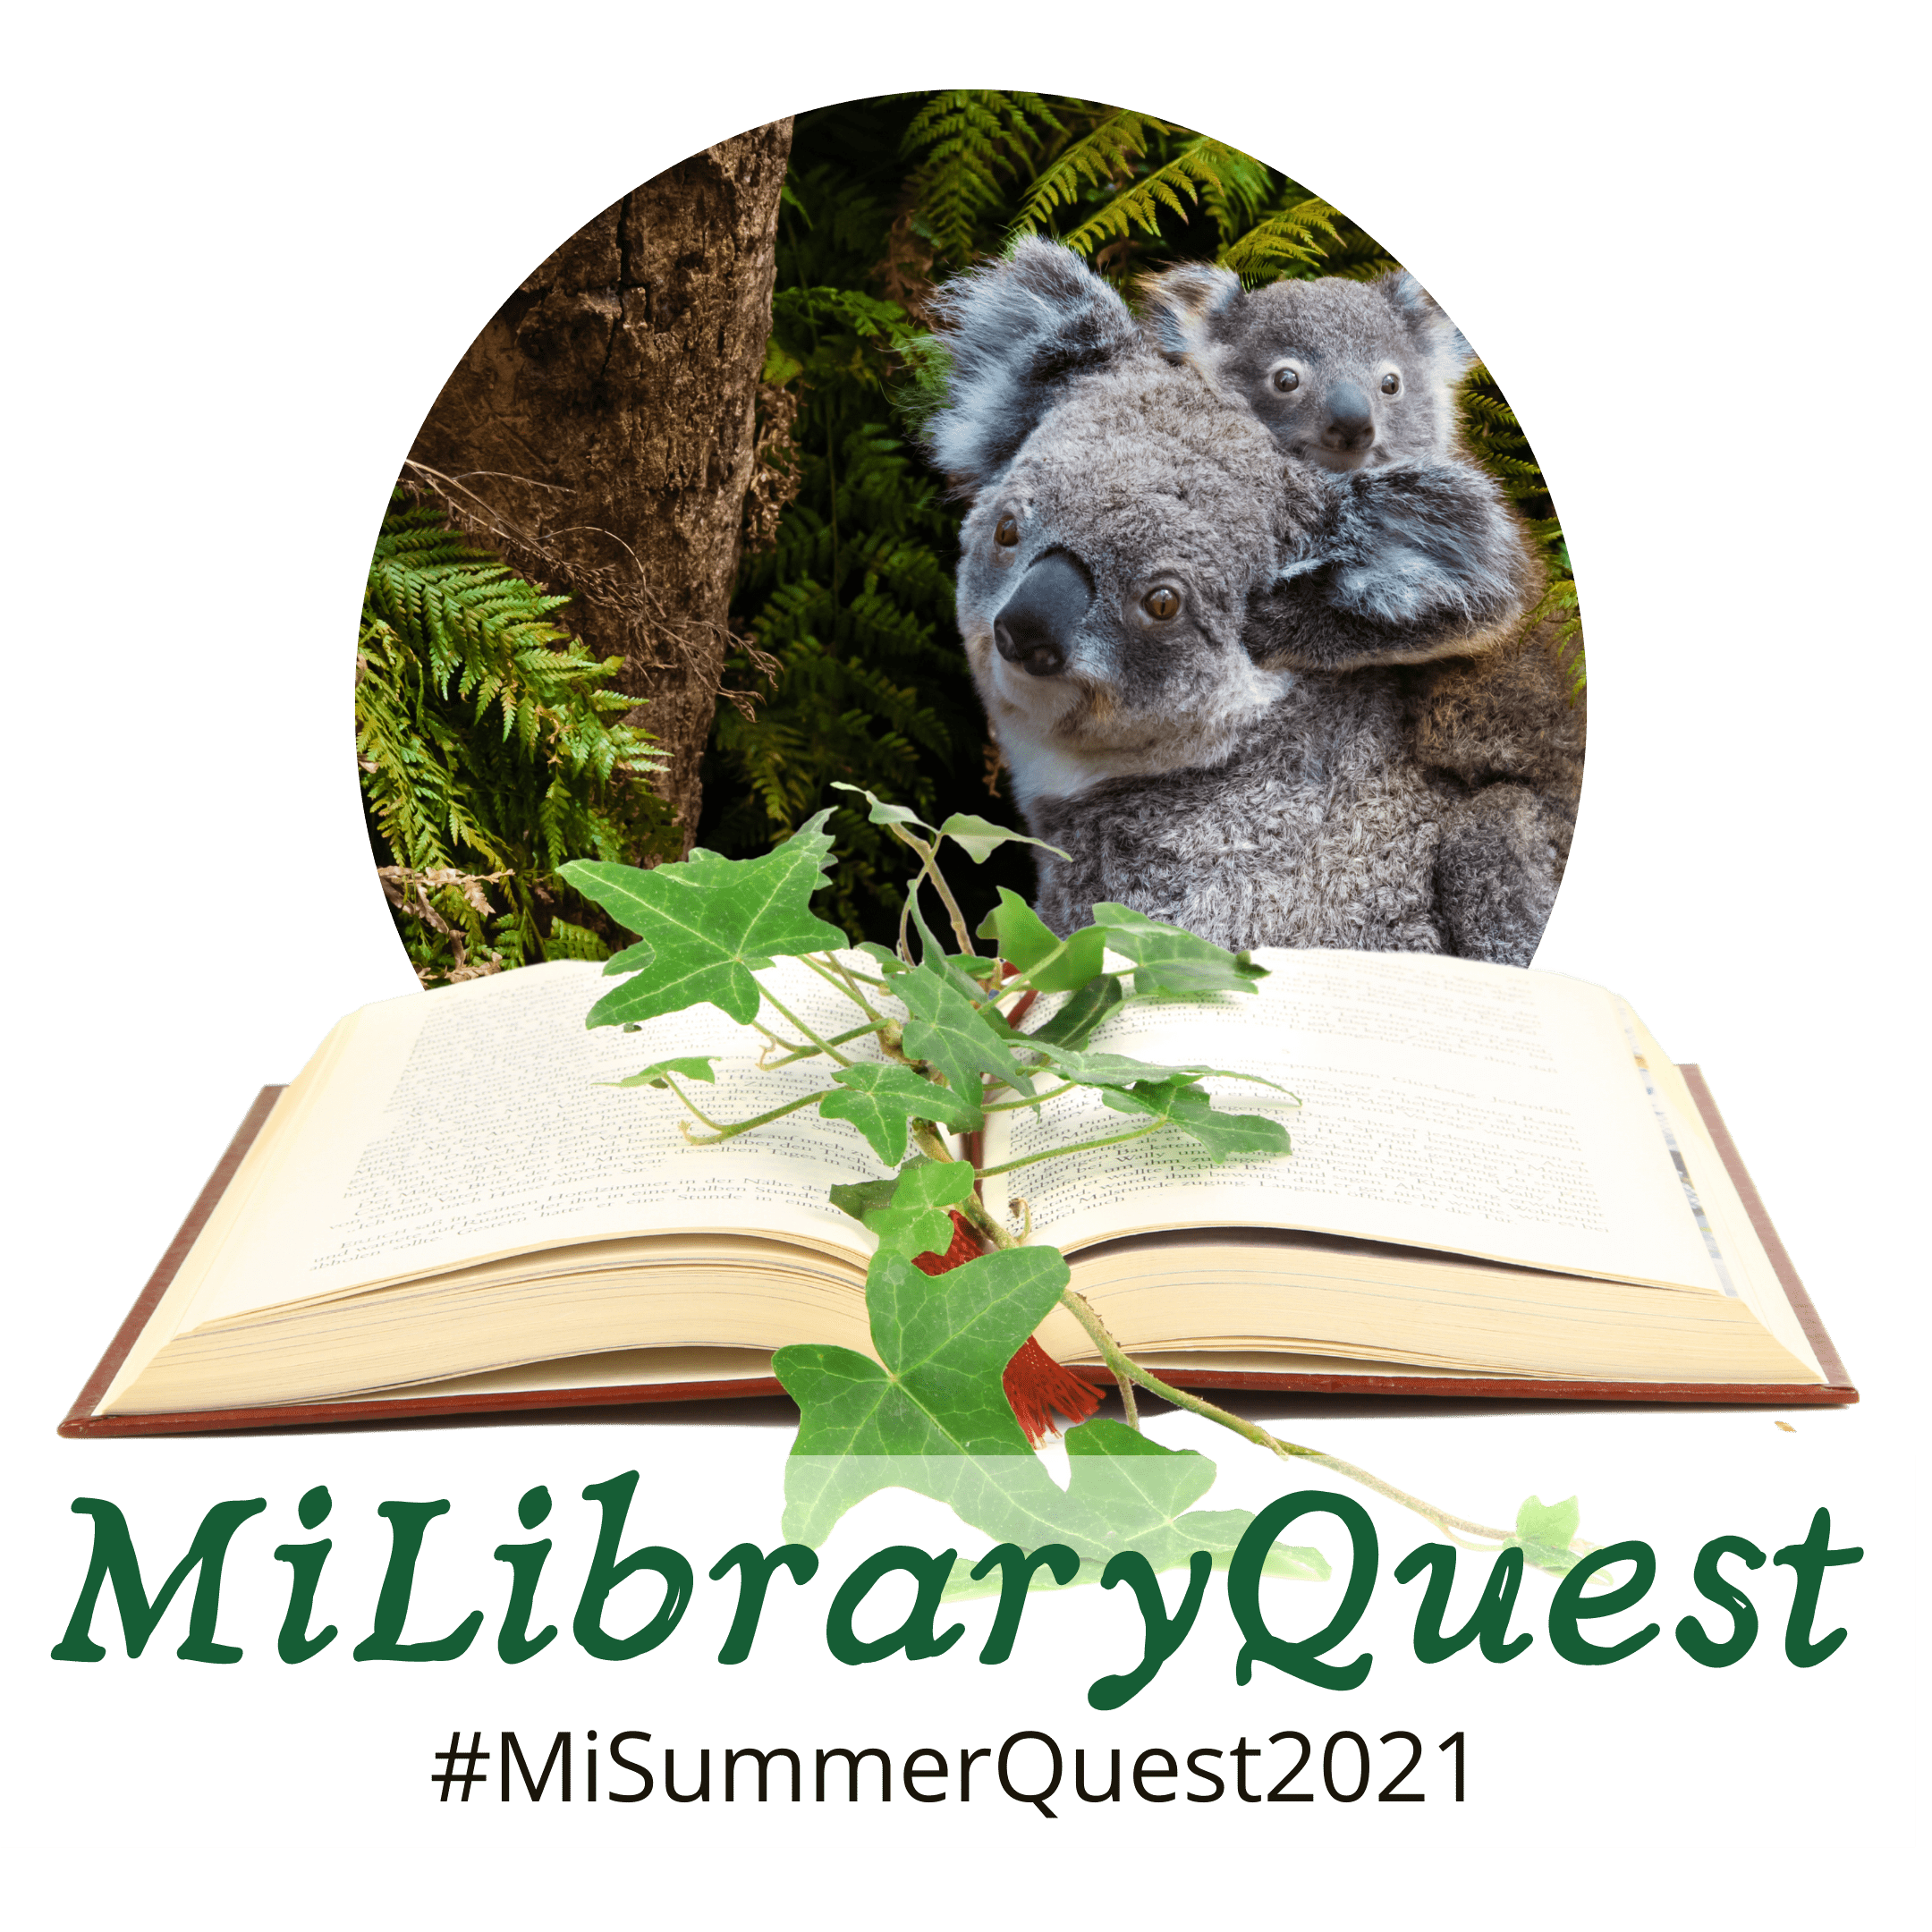 MiLibraryQuest logo with koalas, an open book, and the text #MISummerQuest2021